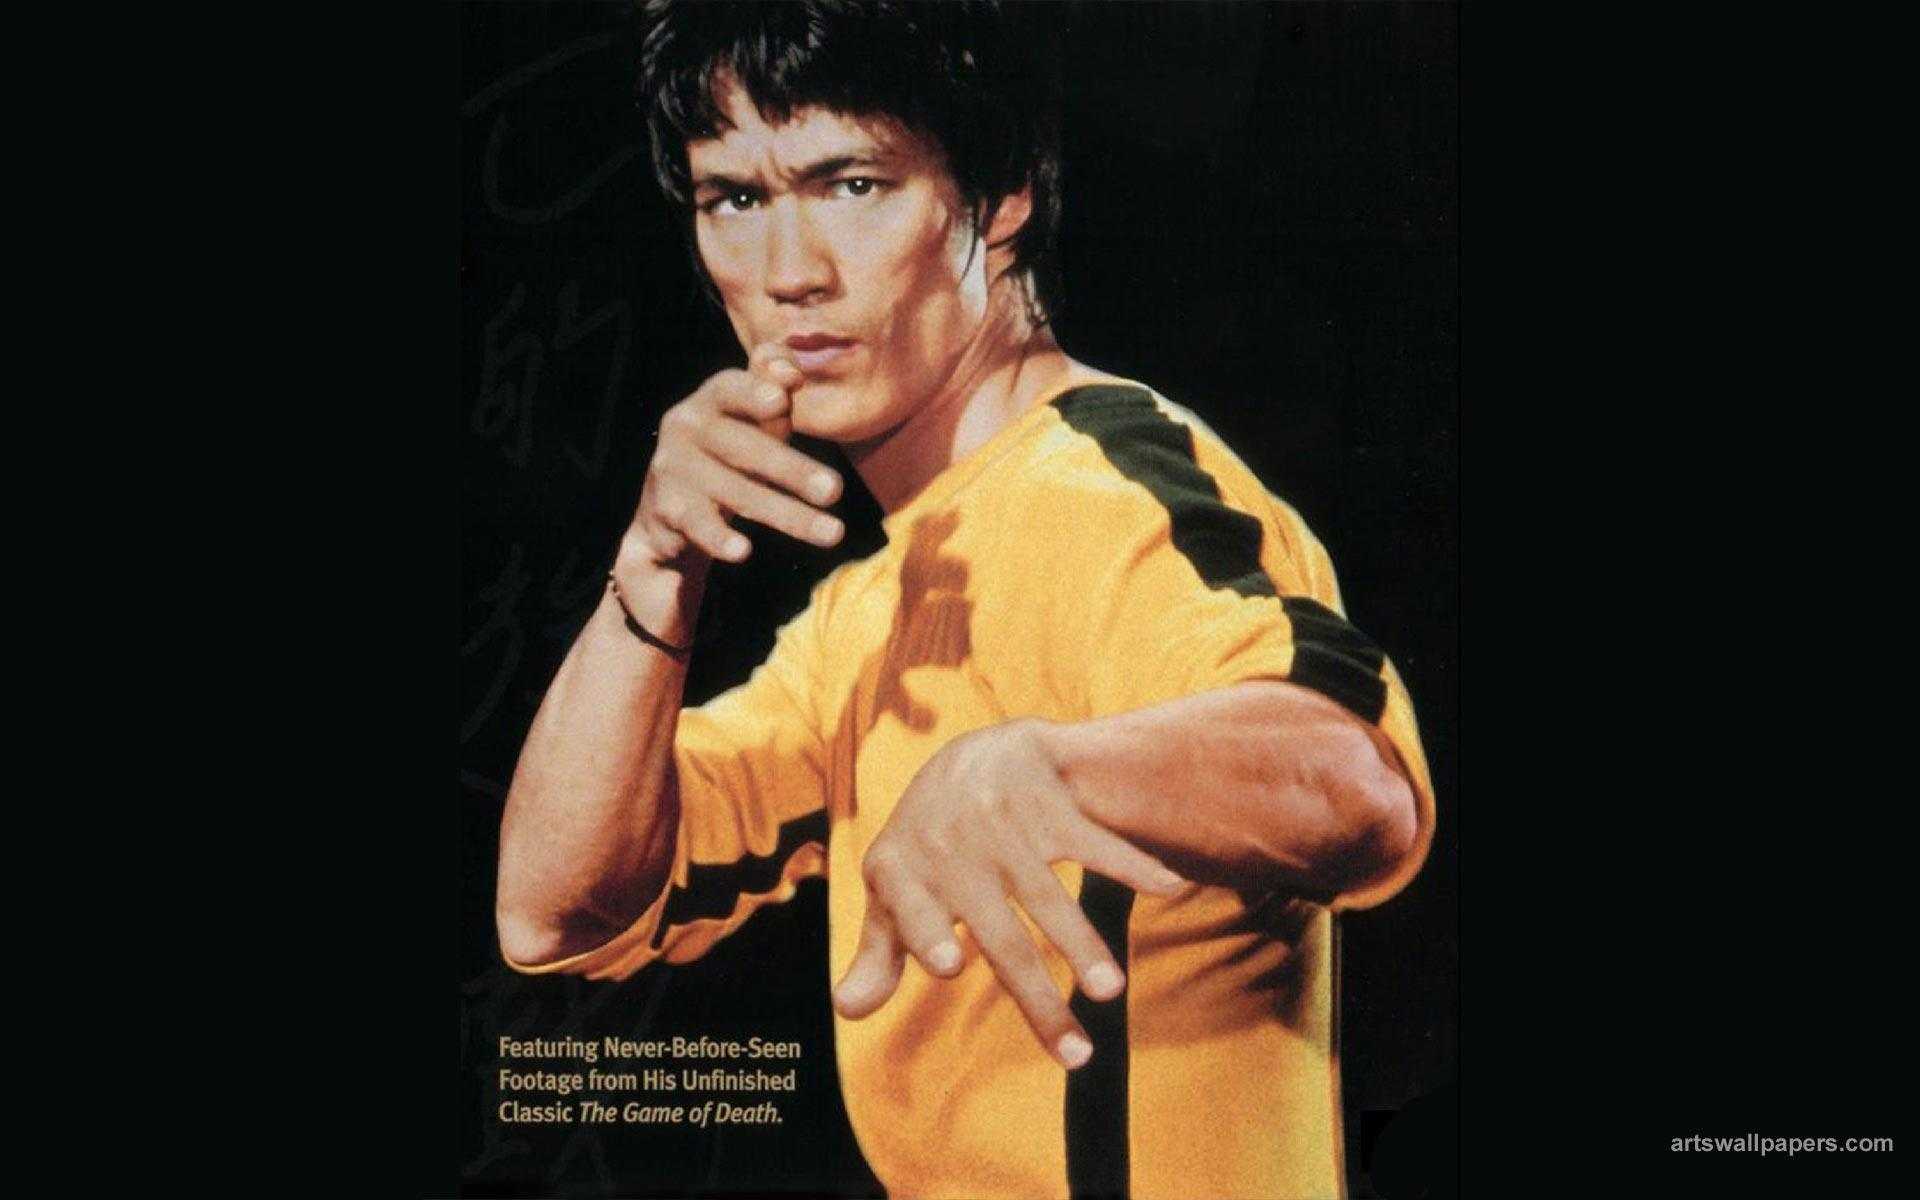 Bruce Lee movie action